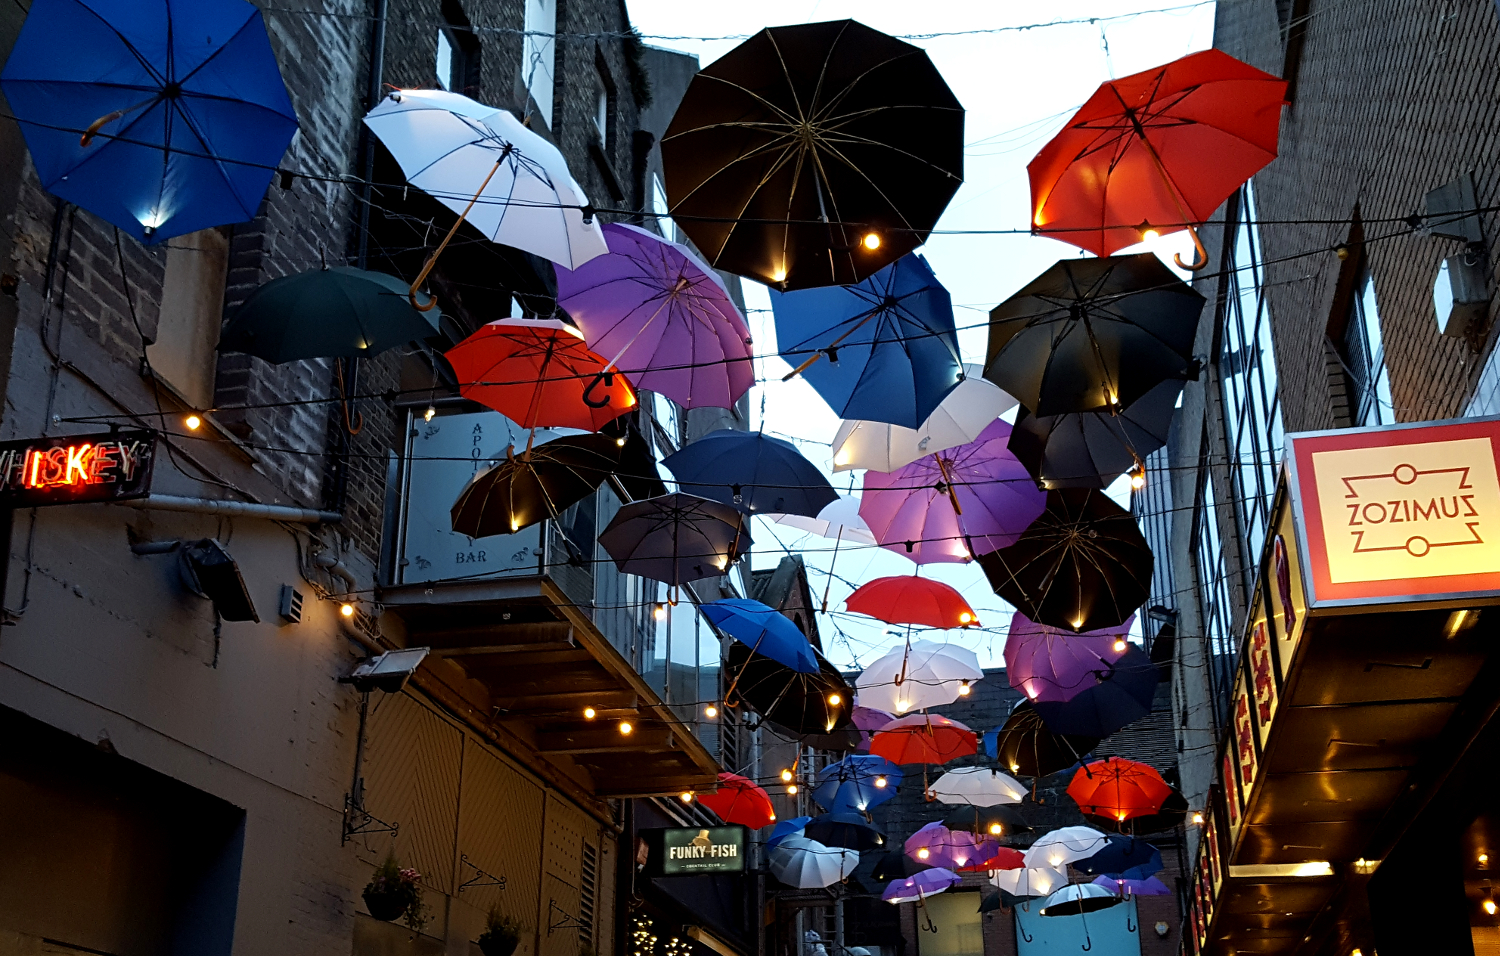 Umbrellas on display in Temple Bar, Dublin